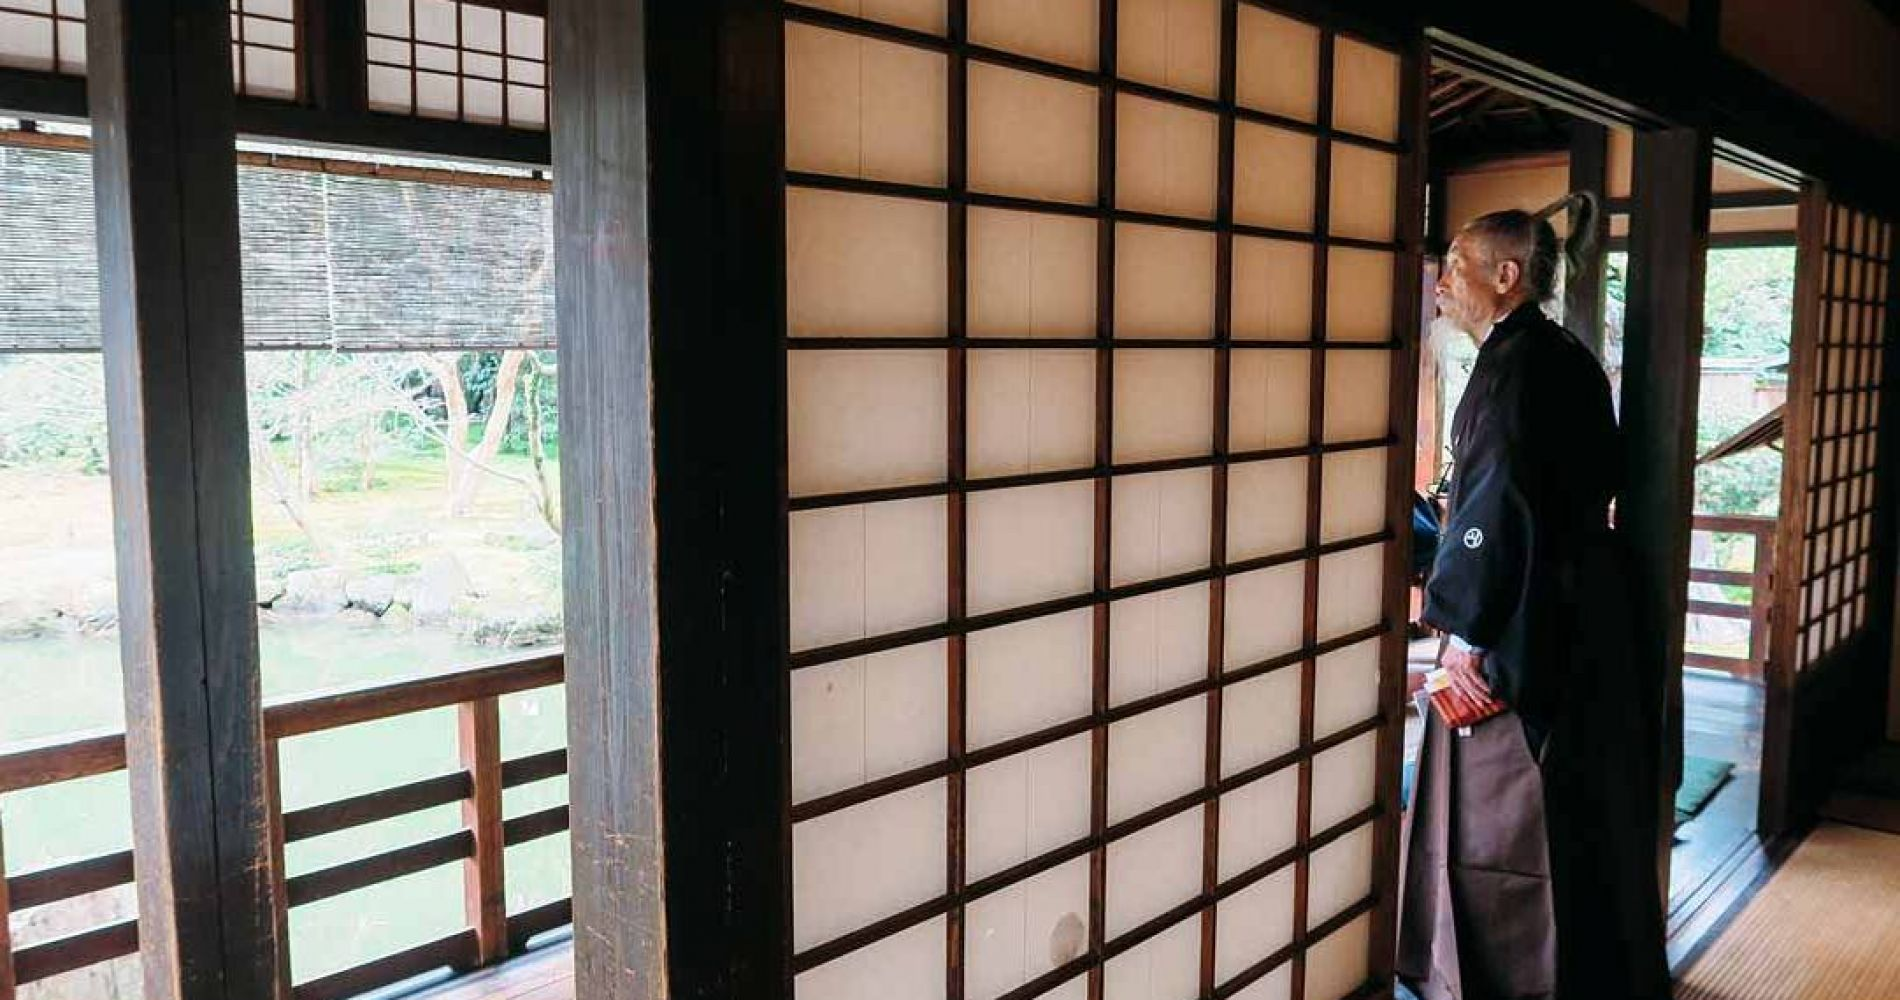 Last Samurai Kyoto experience gifts